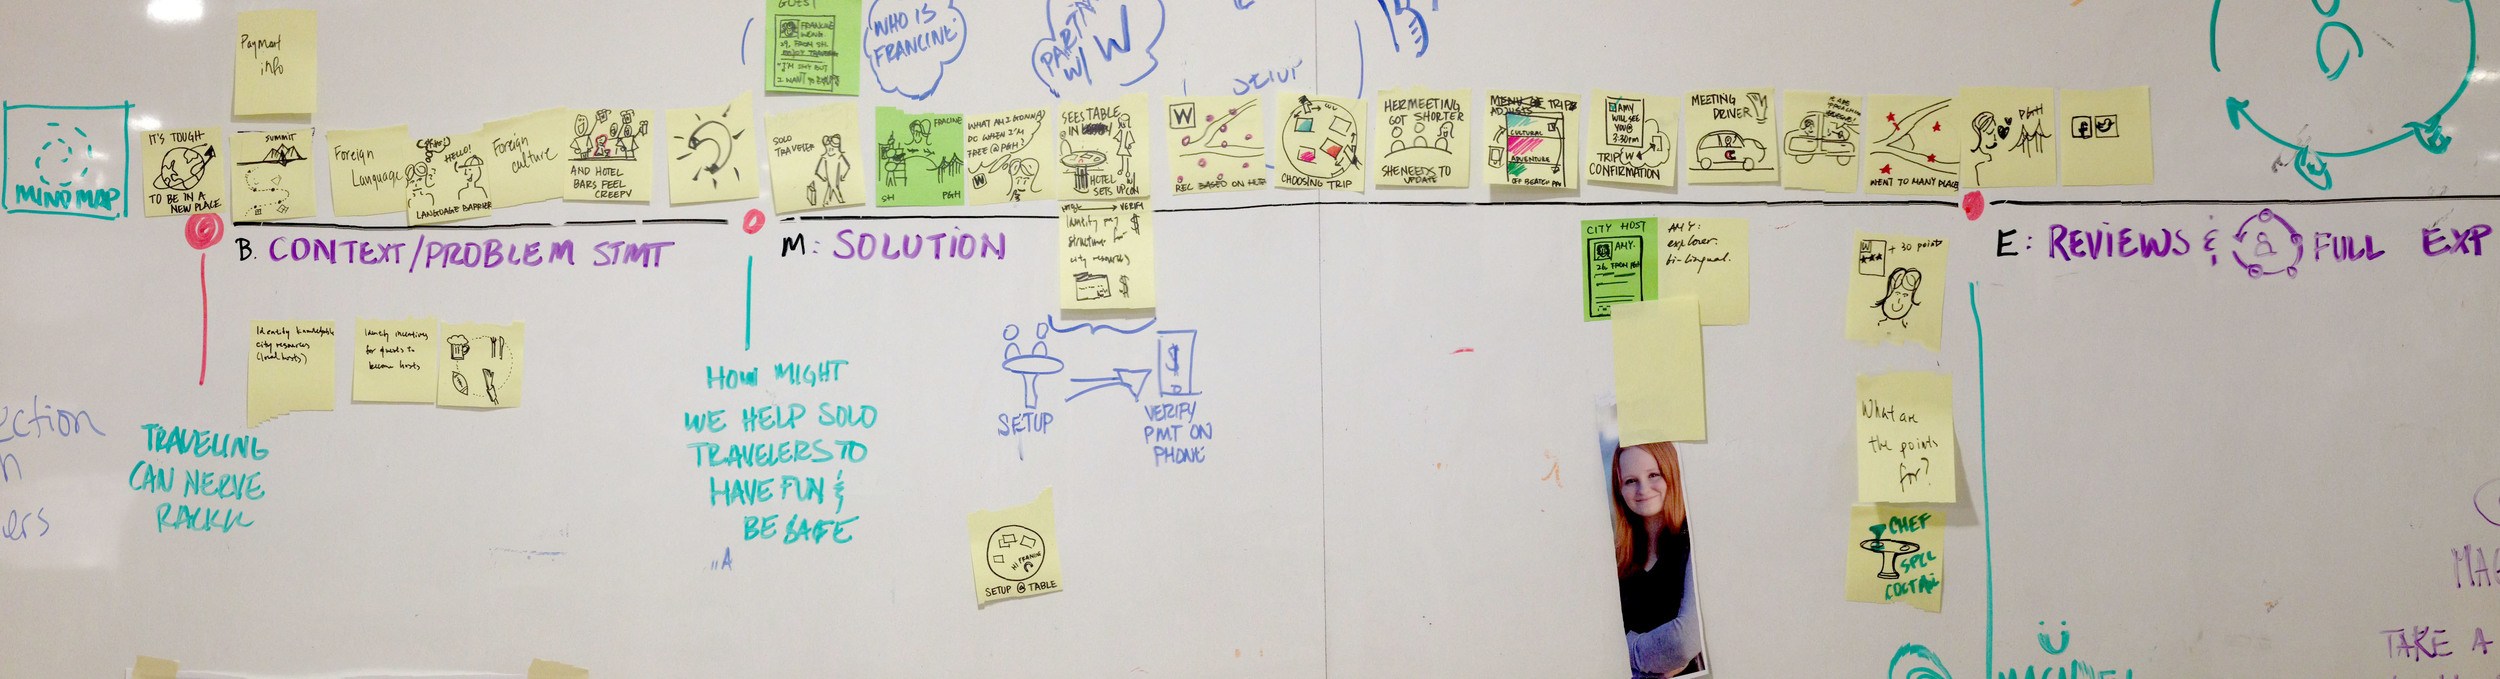 The team build up a storyboard to explain the experience of Magnefy.